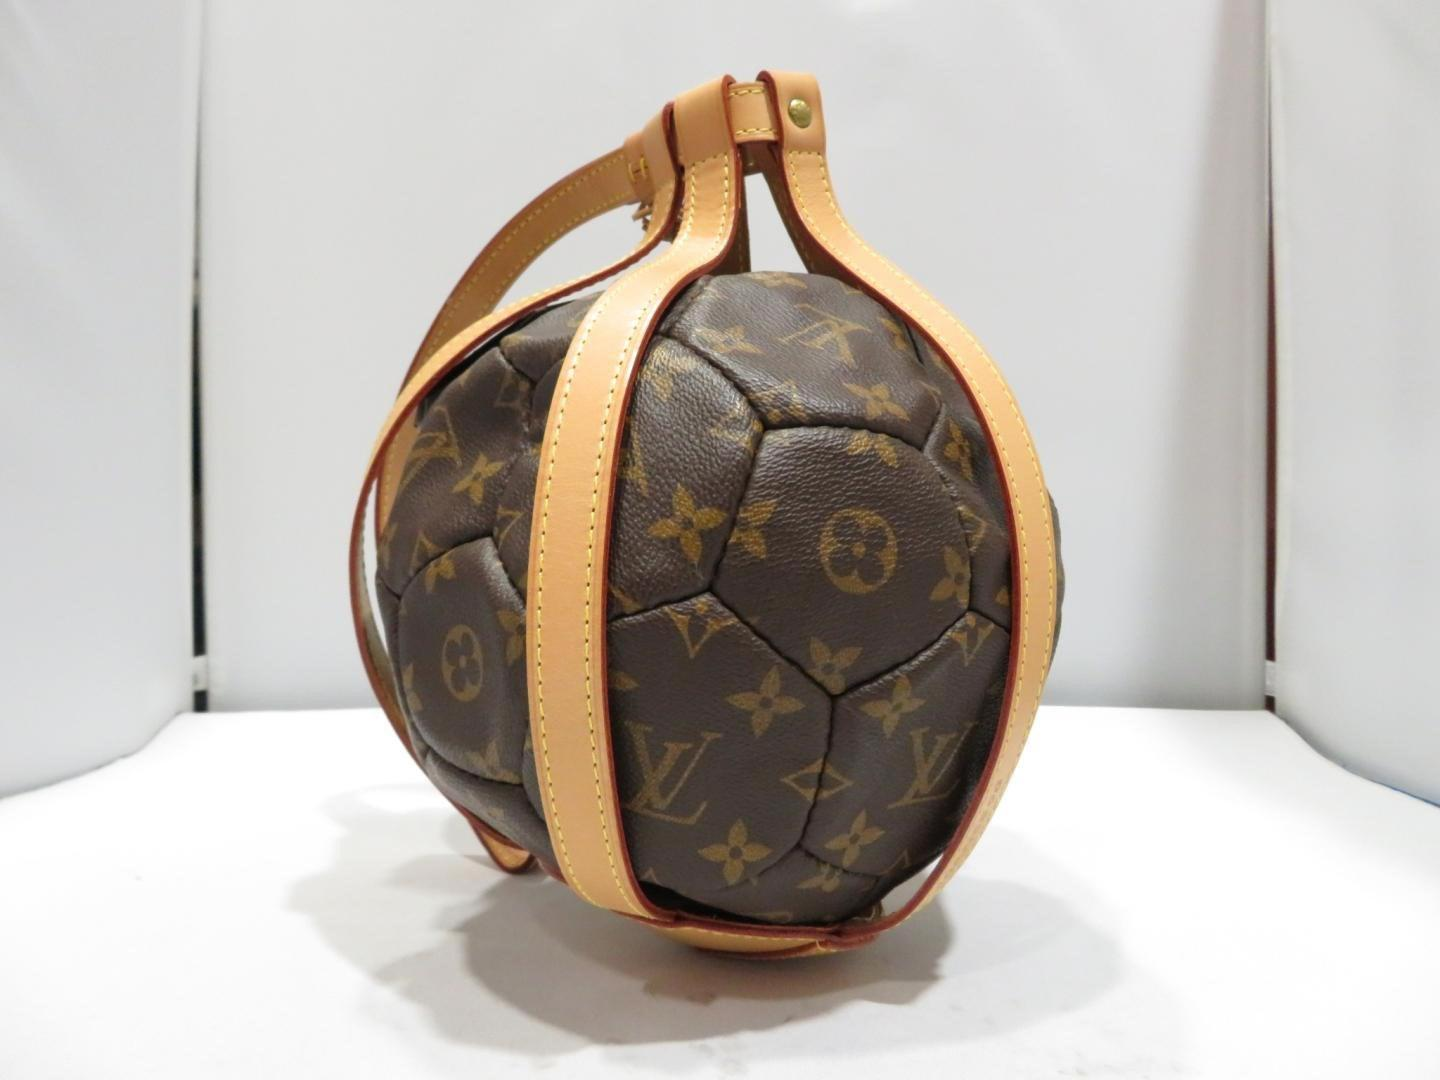 d85eb9024c5d Lyst - Louis Vuitton Soccer Ball World Cup Limited 1998 France ...